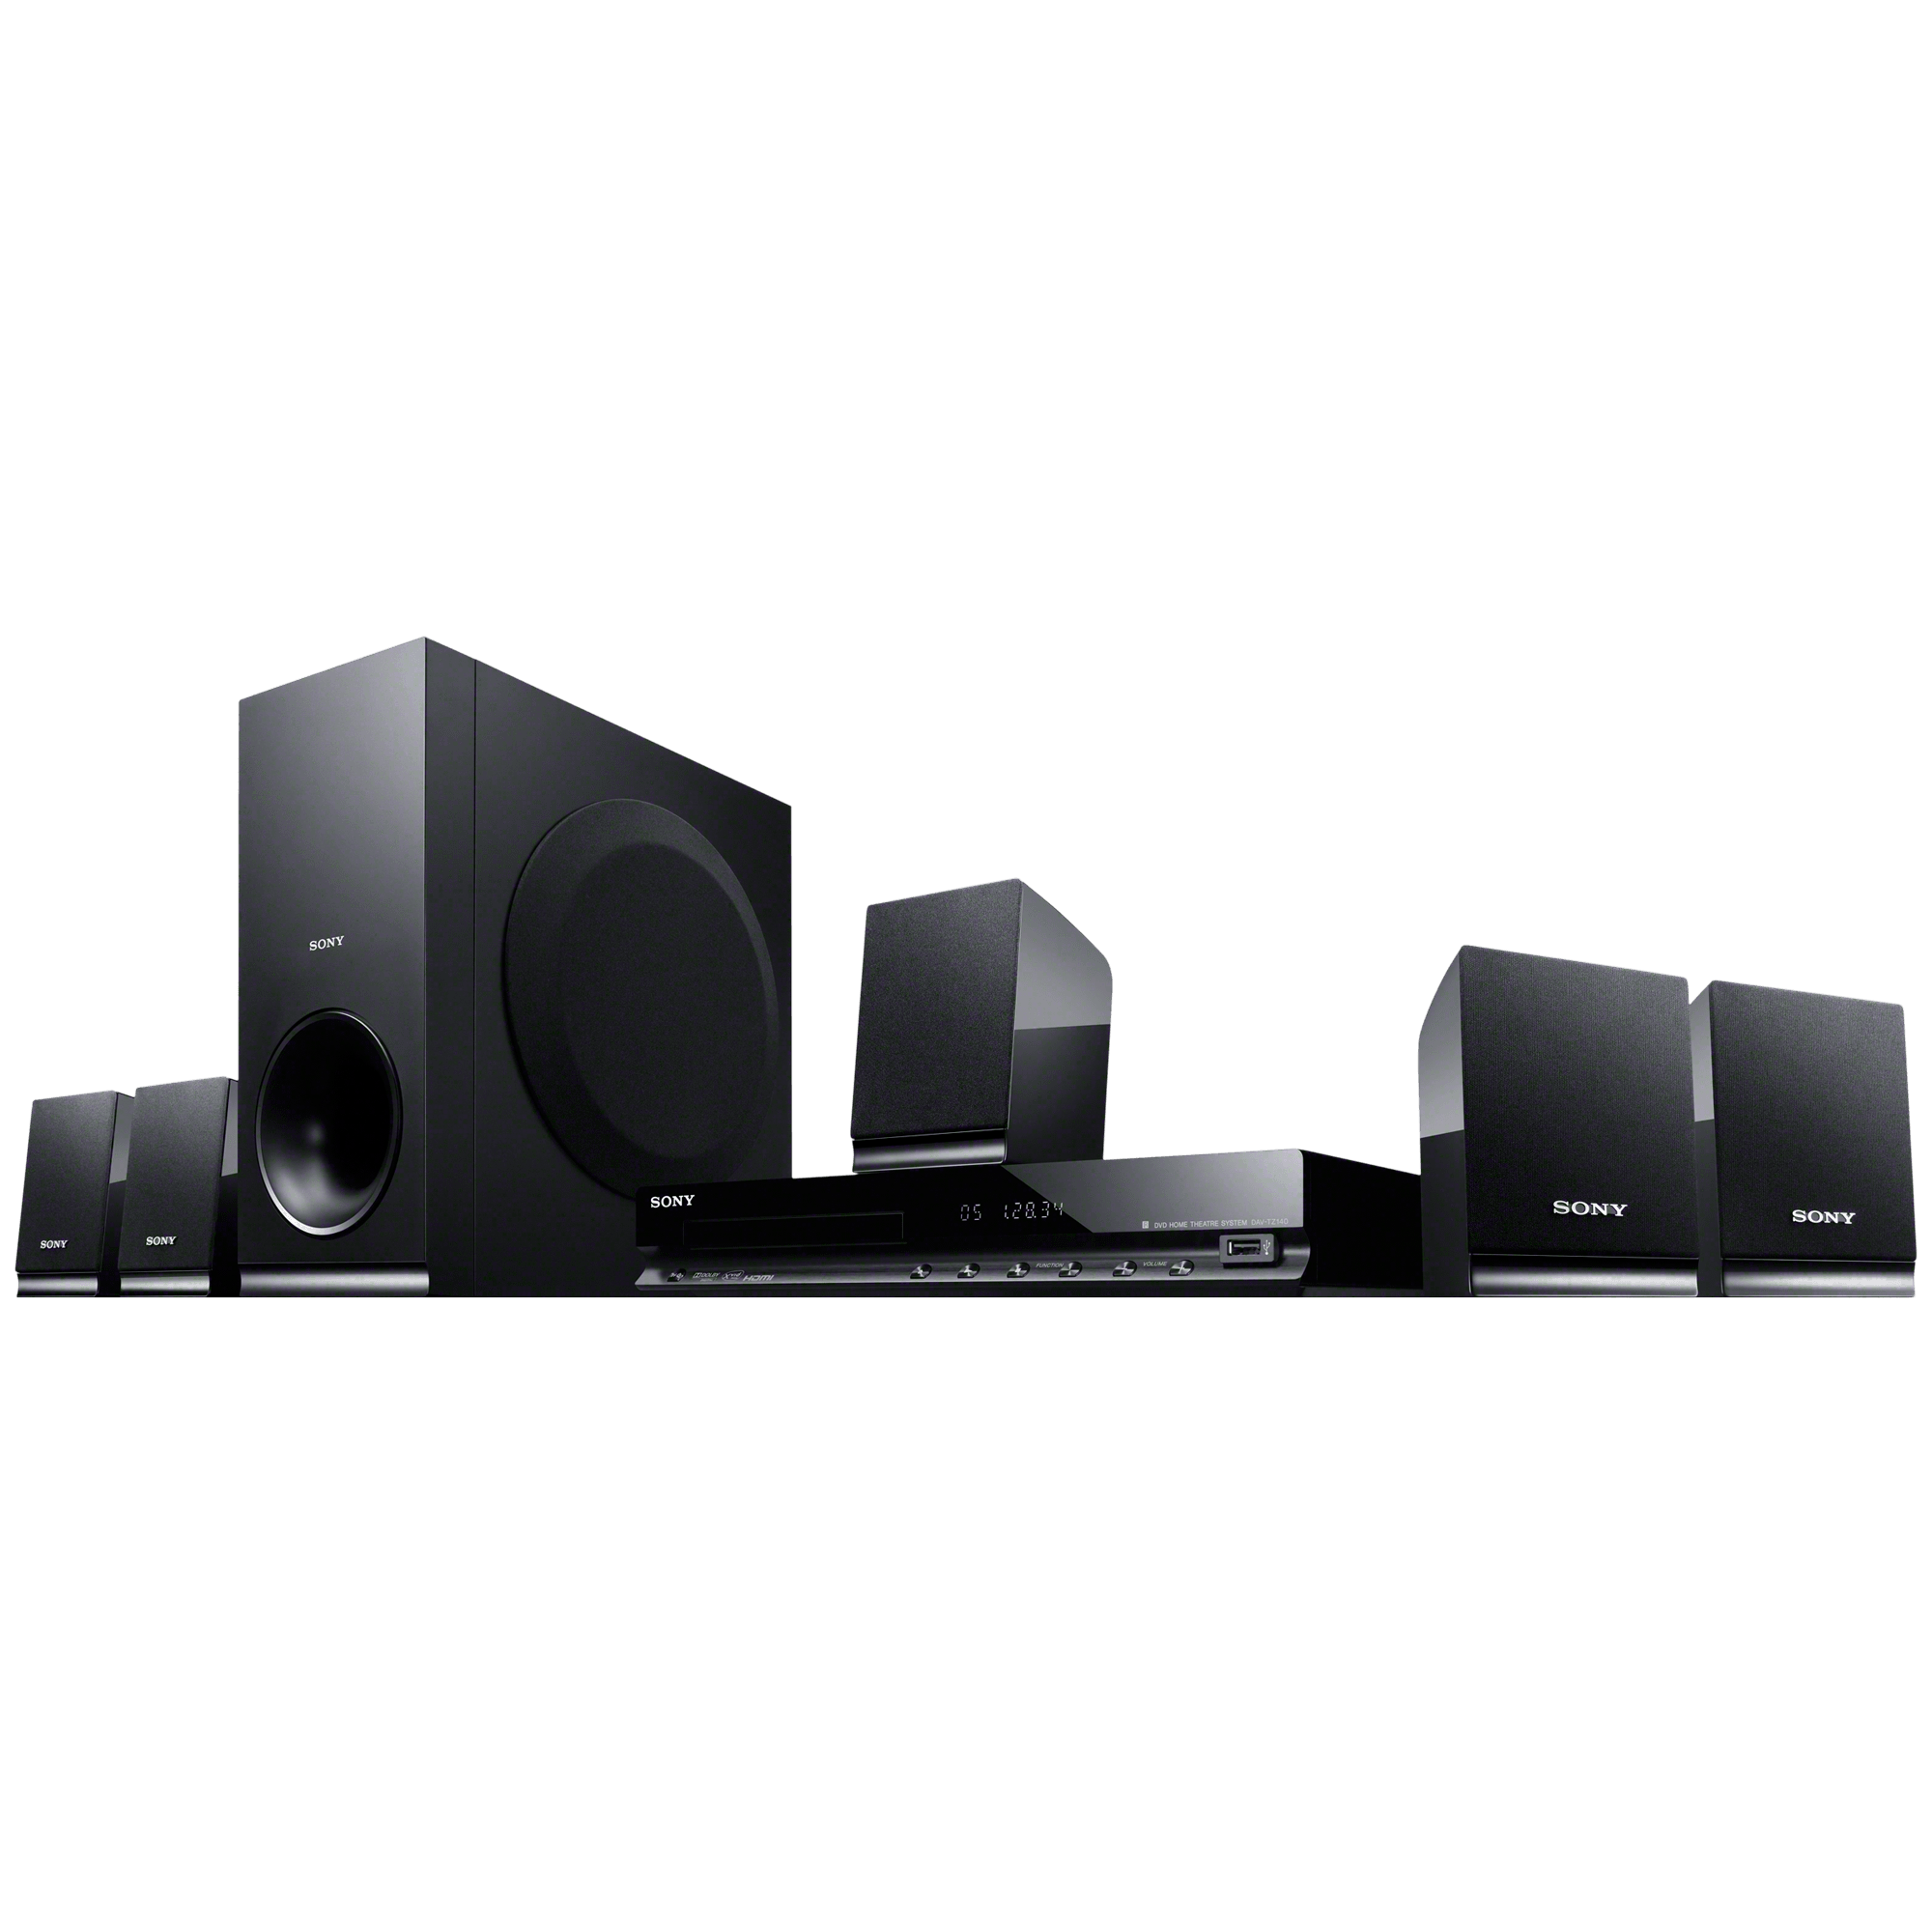 Home Theater Systems - Wireless Surround Sound Systems - Sony US ...